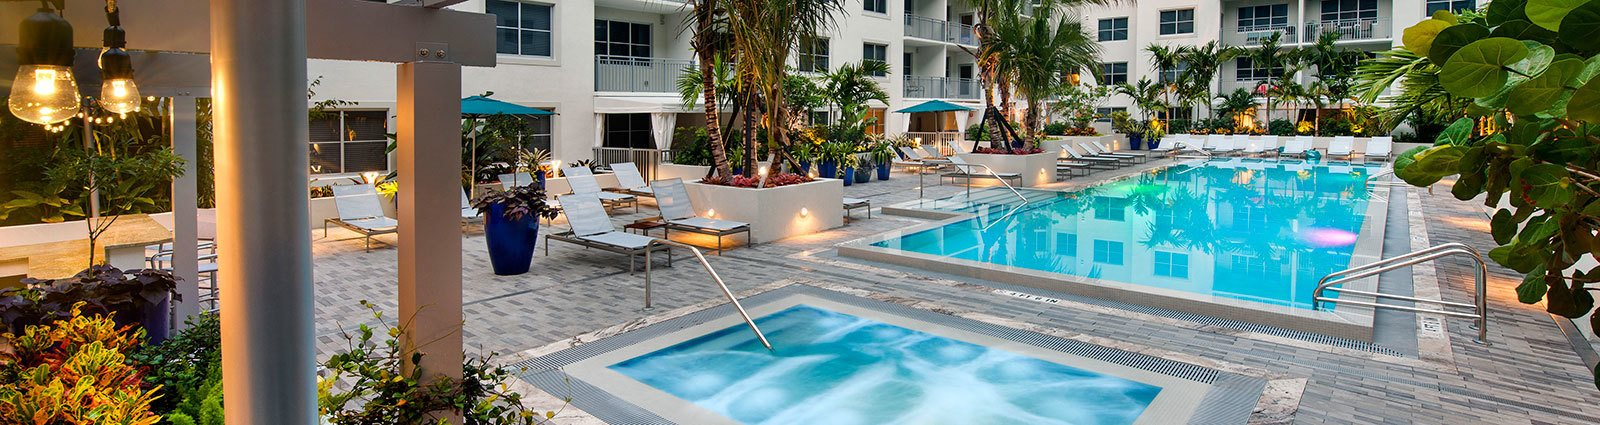 Berkshire Lauderdale By The Sea community amenities